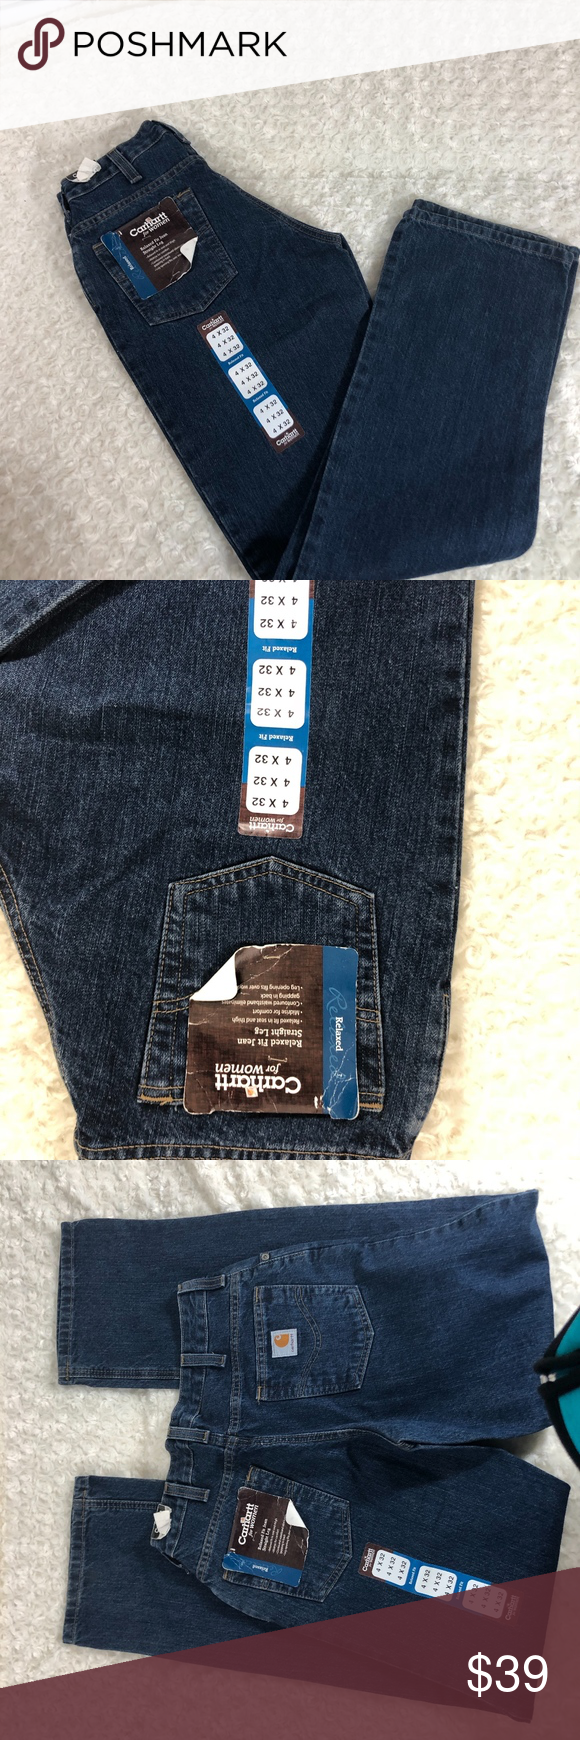 New Carhartt Womens Sz 4 32 Jeans WB160VID New Carhartt Womens Sz 4 32 Jeans WB160VID Relaxed Fit Straight Leg new with tags condition Carhartt Jeans Straight Leg #carharttwomen